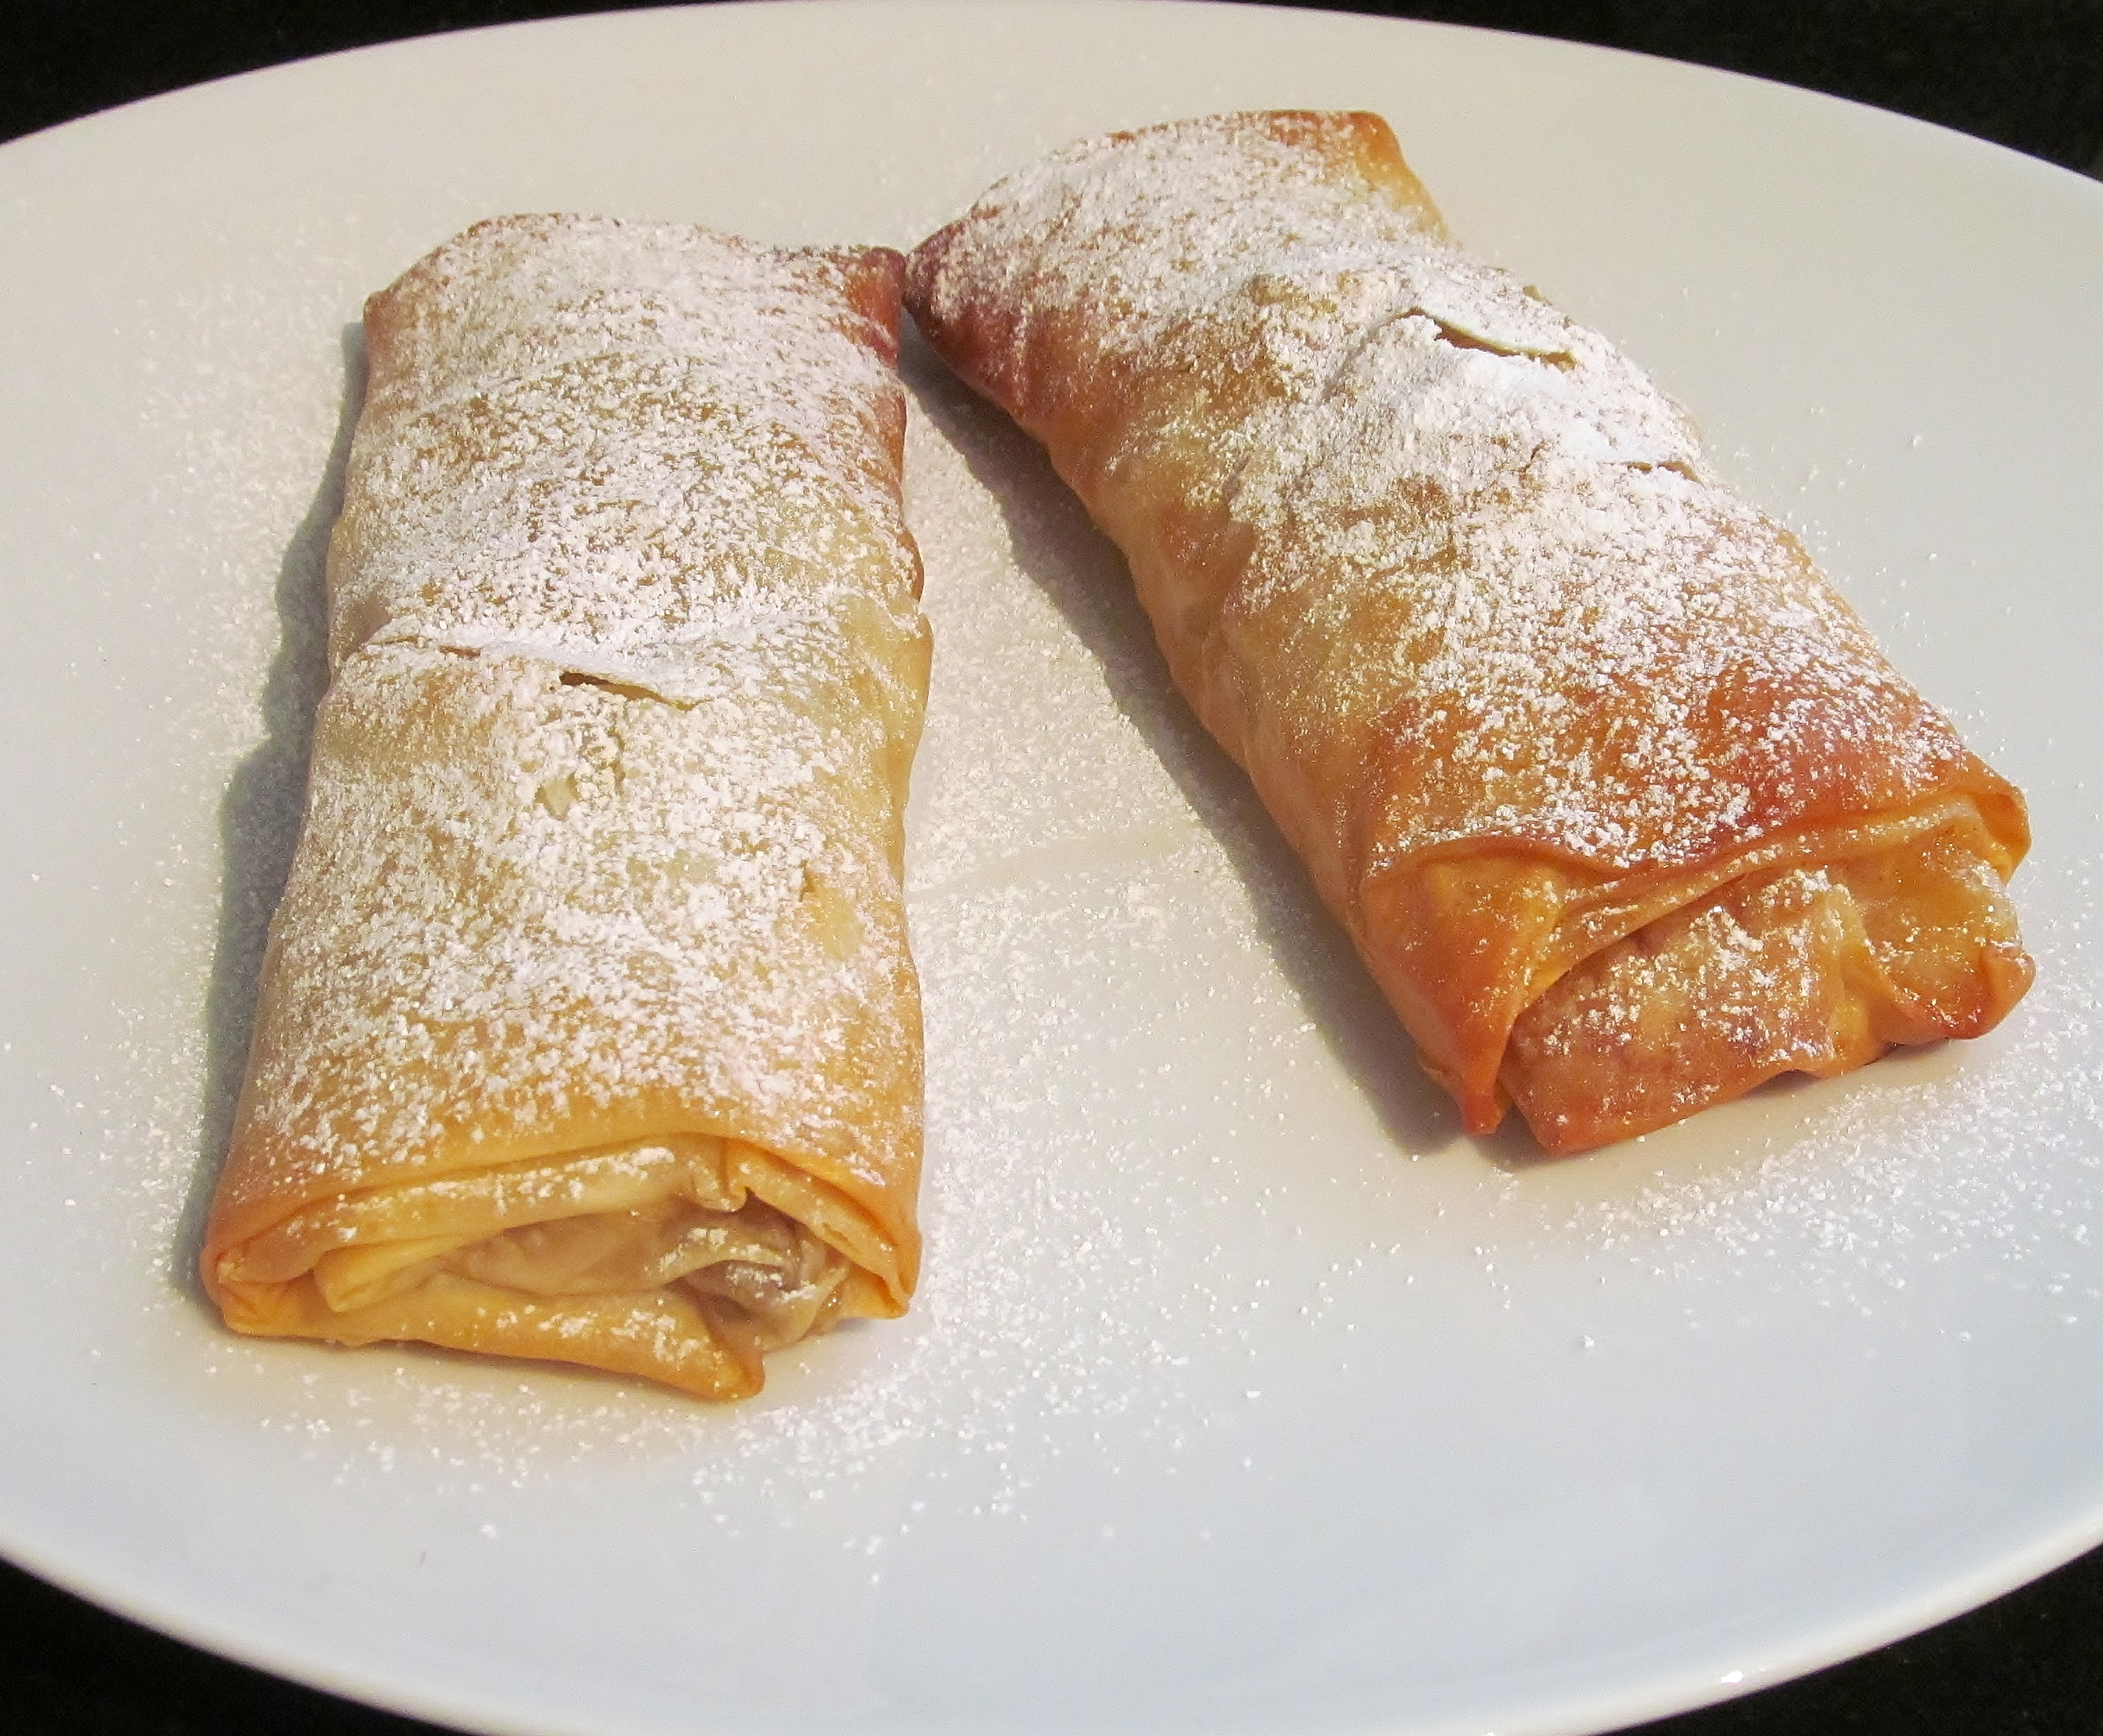 mary berry's apple strudel | Lullingstone Photography